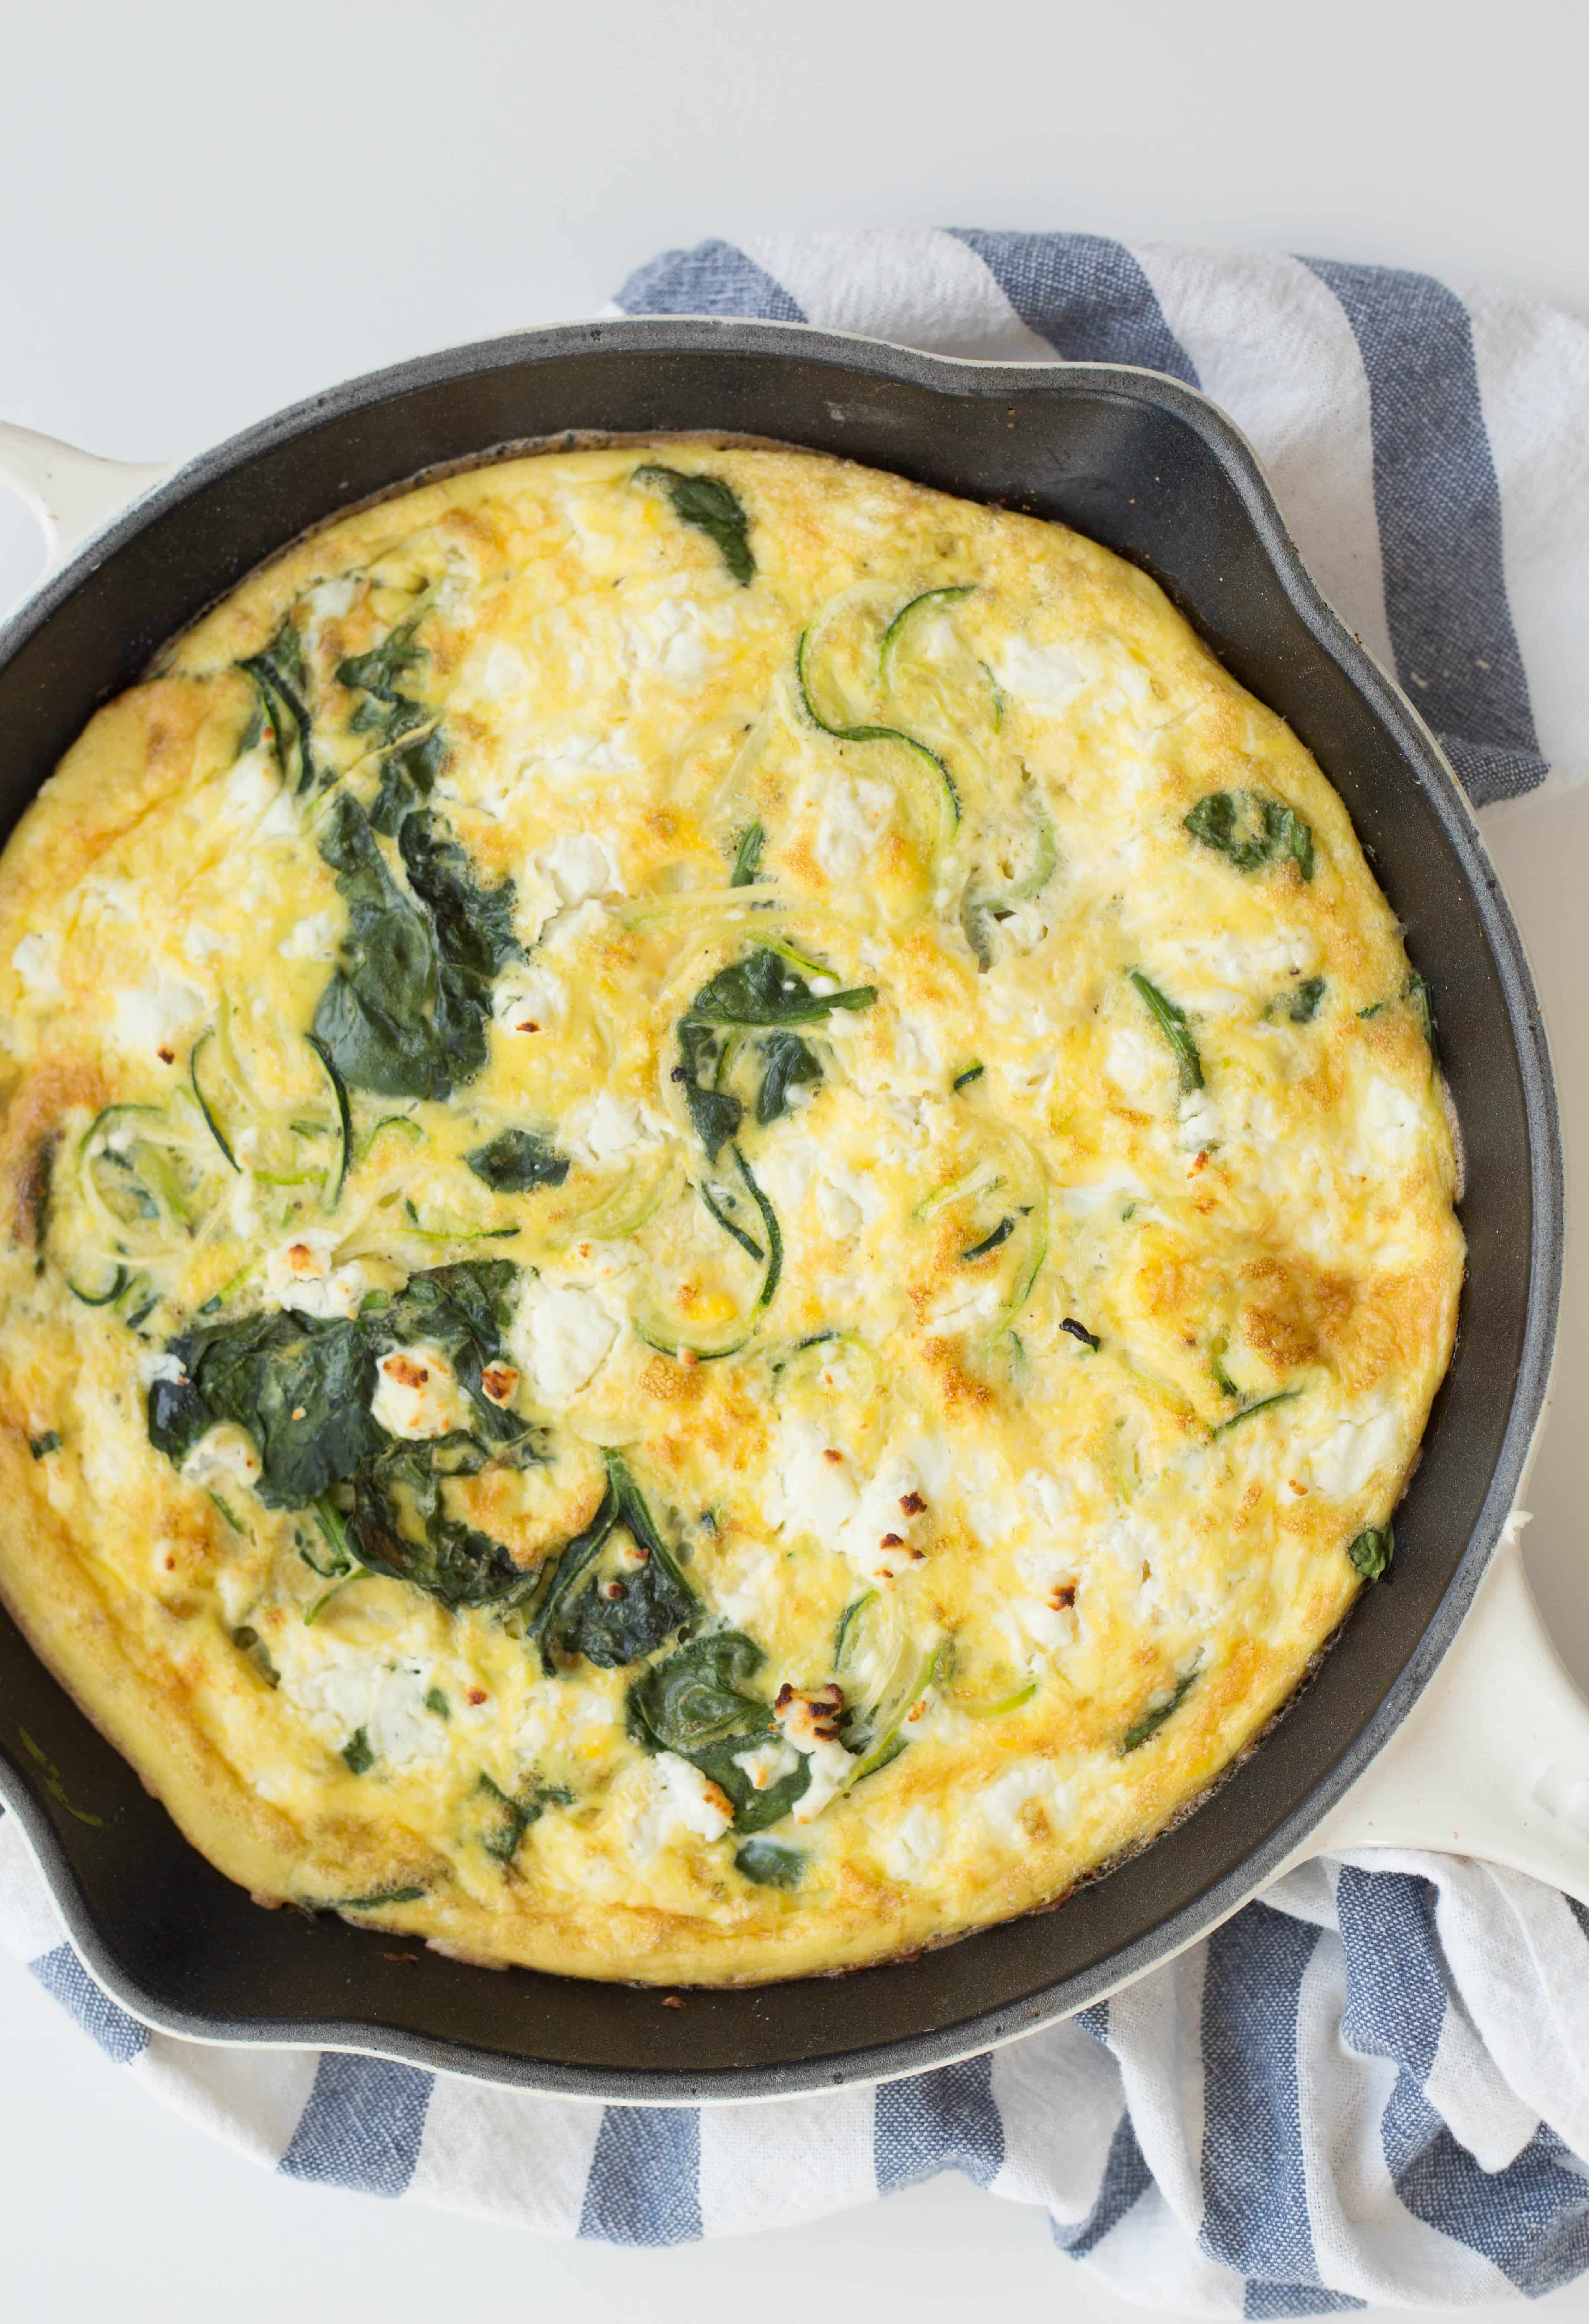 Zucchini Noodle and Spinach Frittata with Goat Cheese